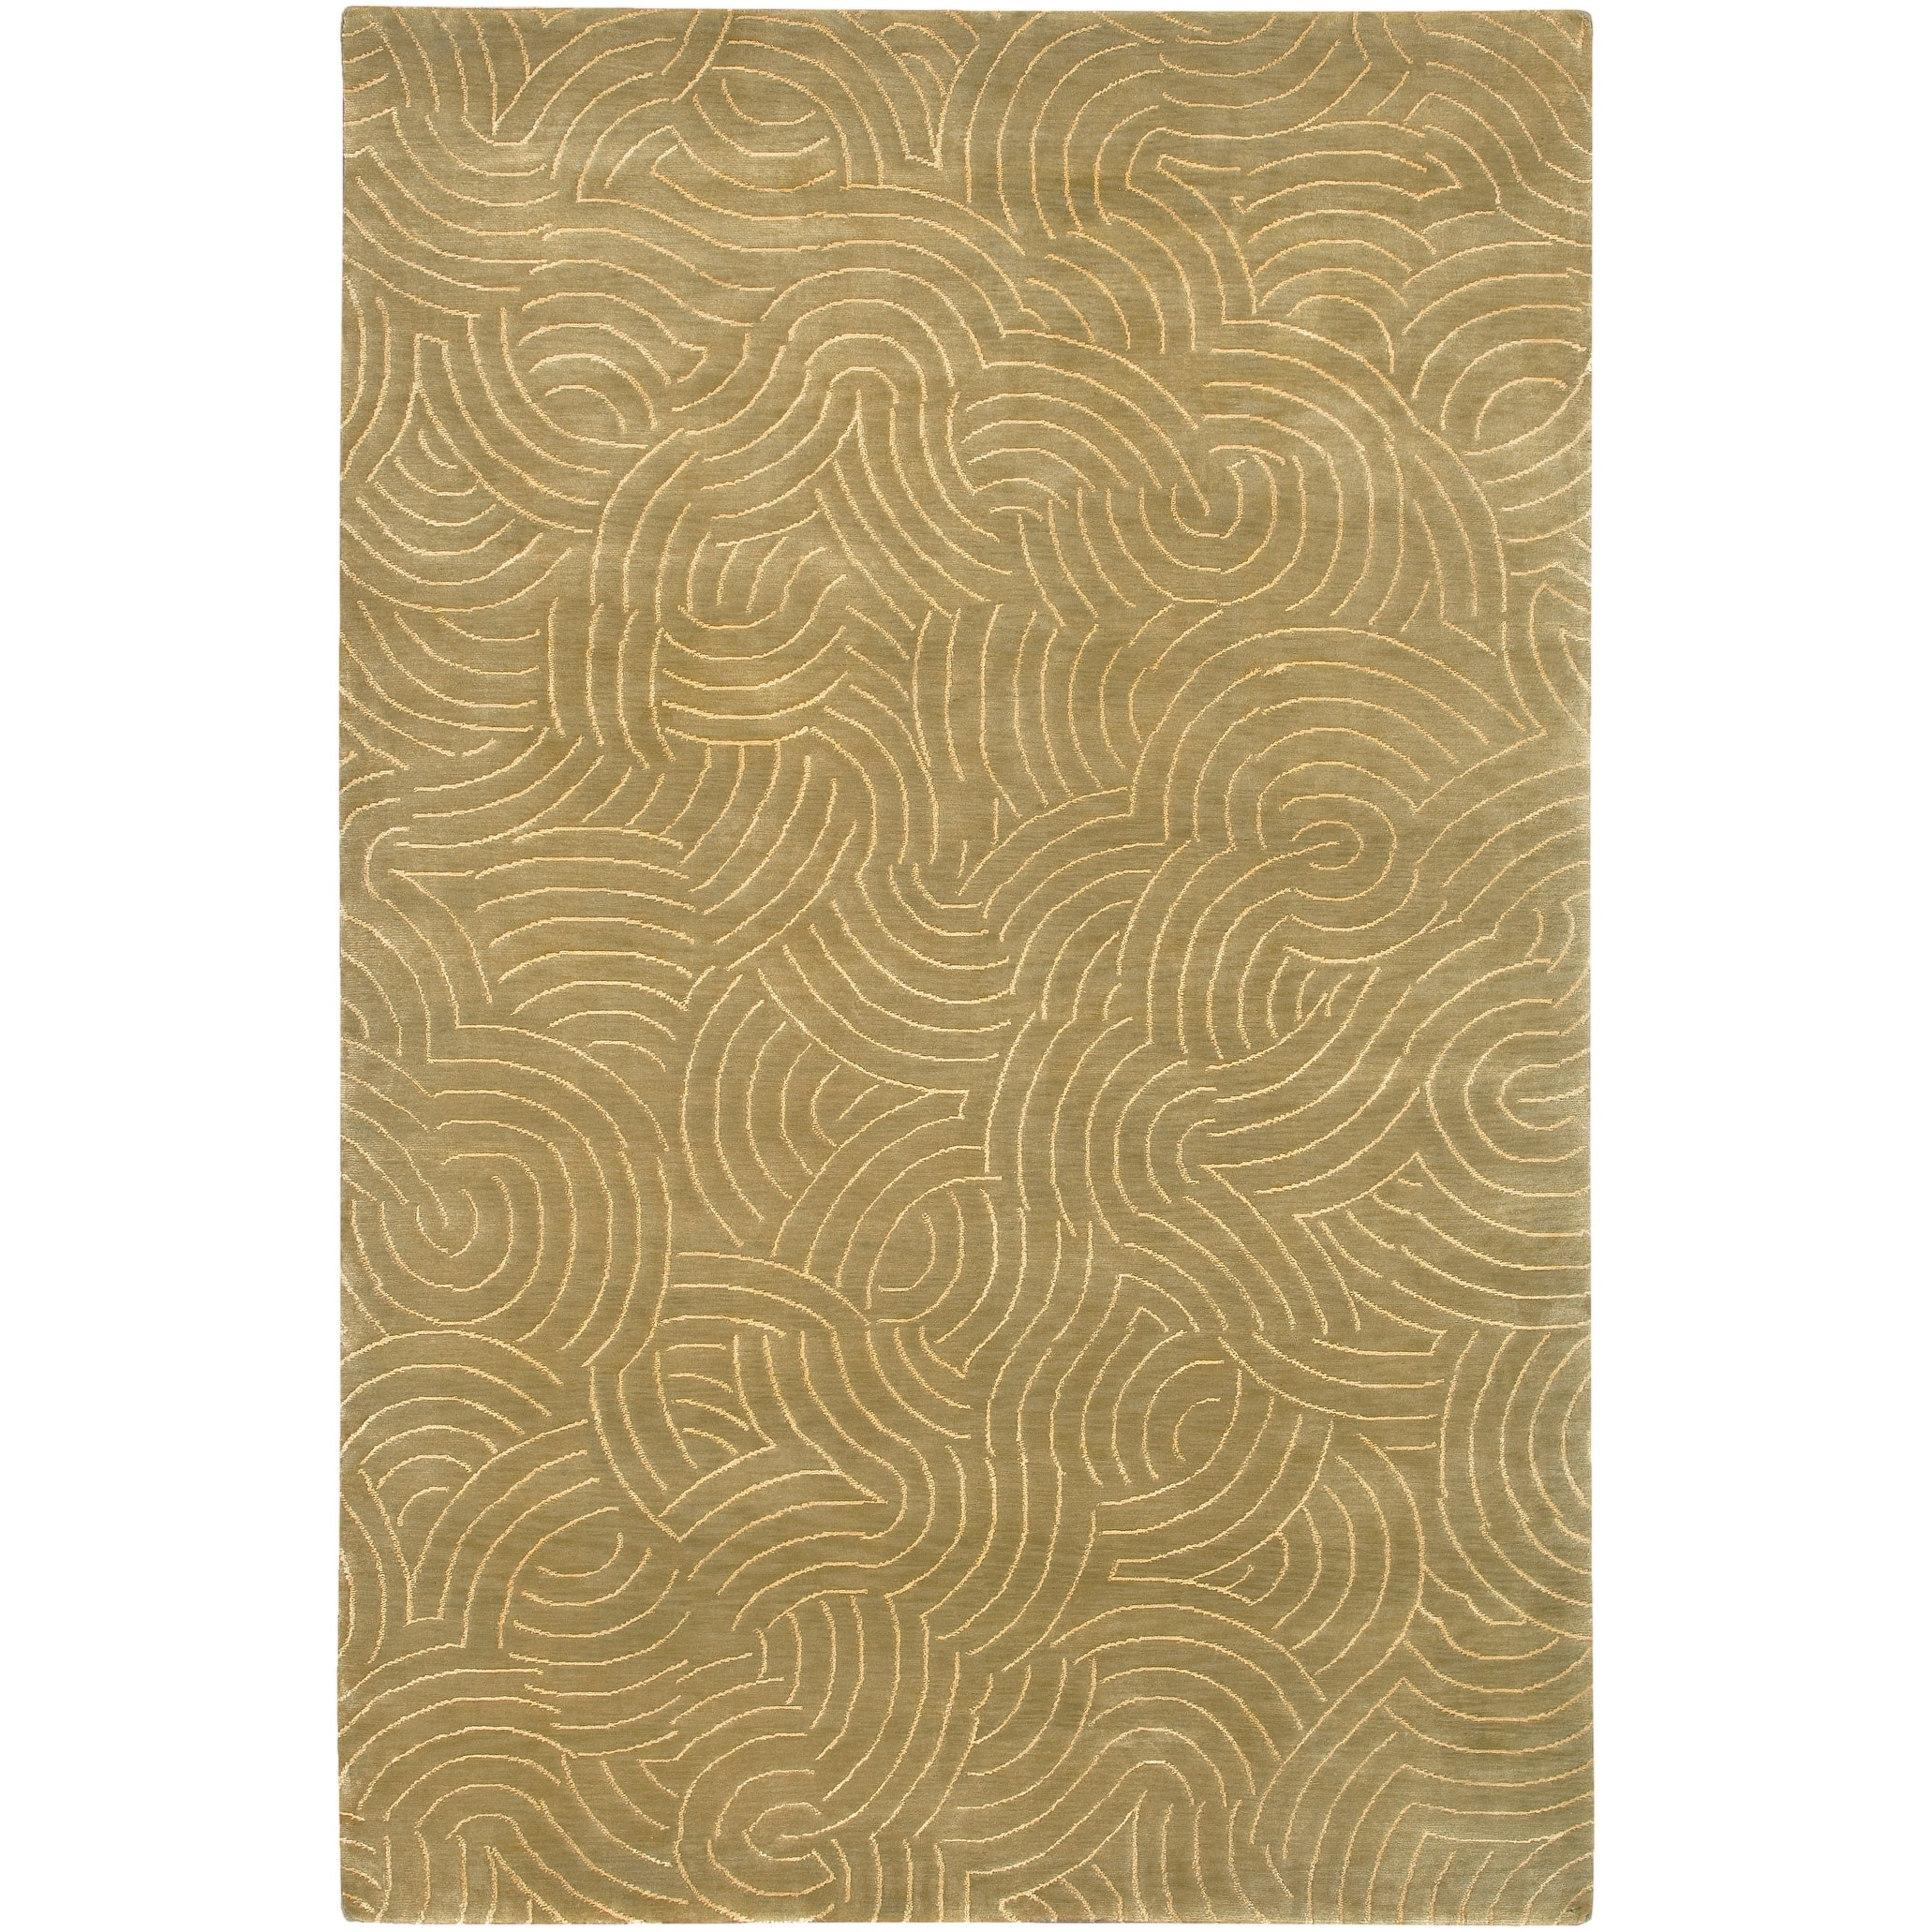 Hand Knotted Woodstock Abstract Design Wool Area Rug 9 X 13 On Sale Overstock 6137045